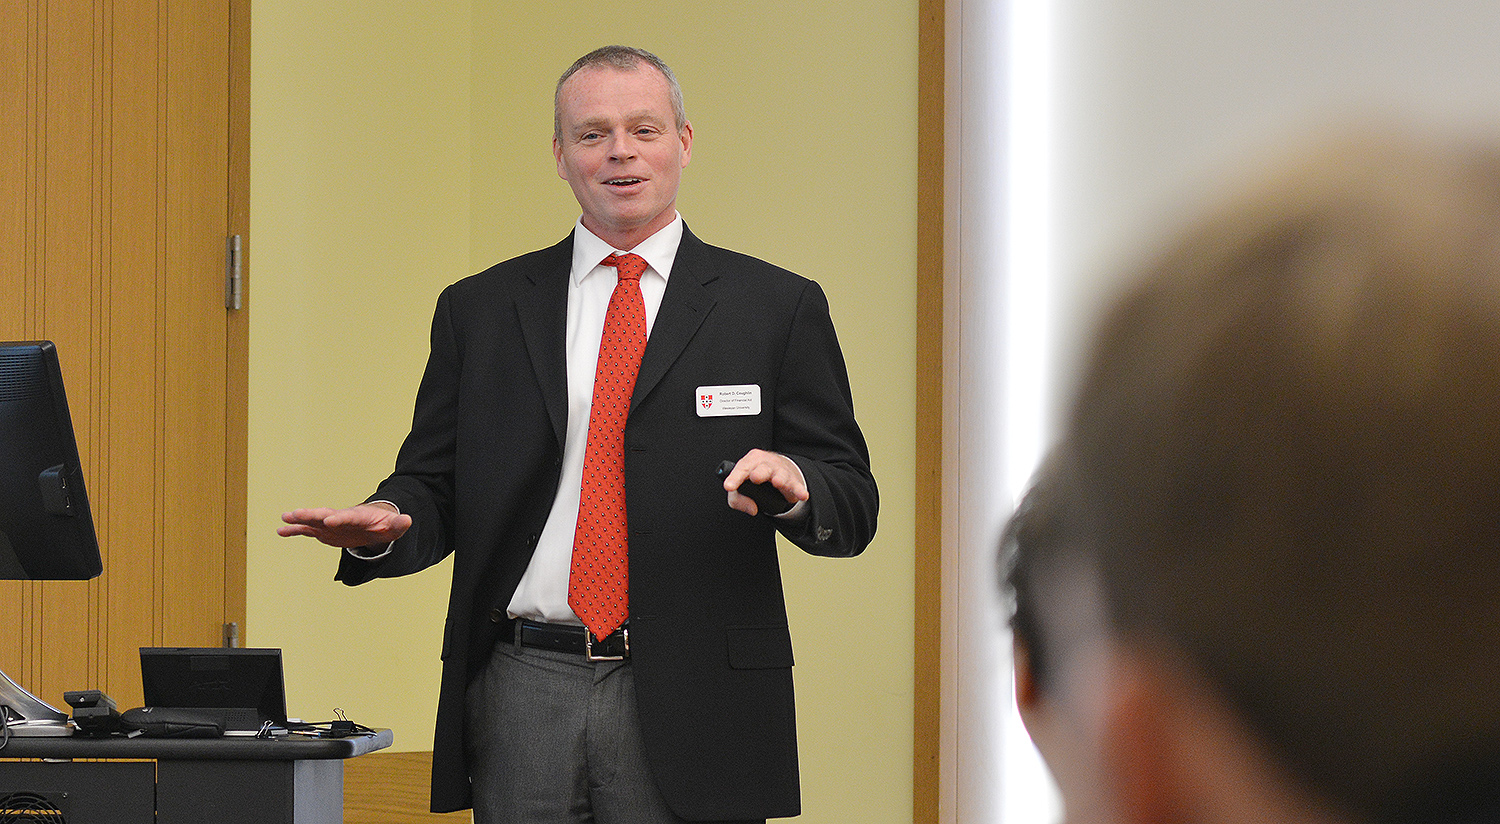 Robert Coughlin, director of financial aid, spoke to families about obtaining financial aid at Wesleyan.